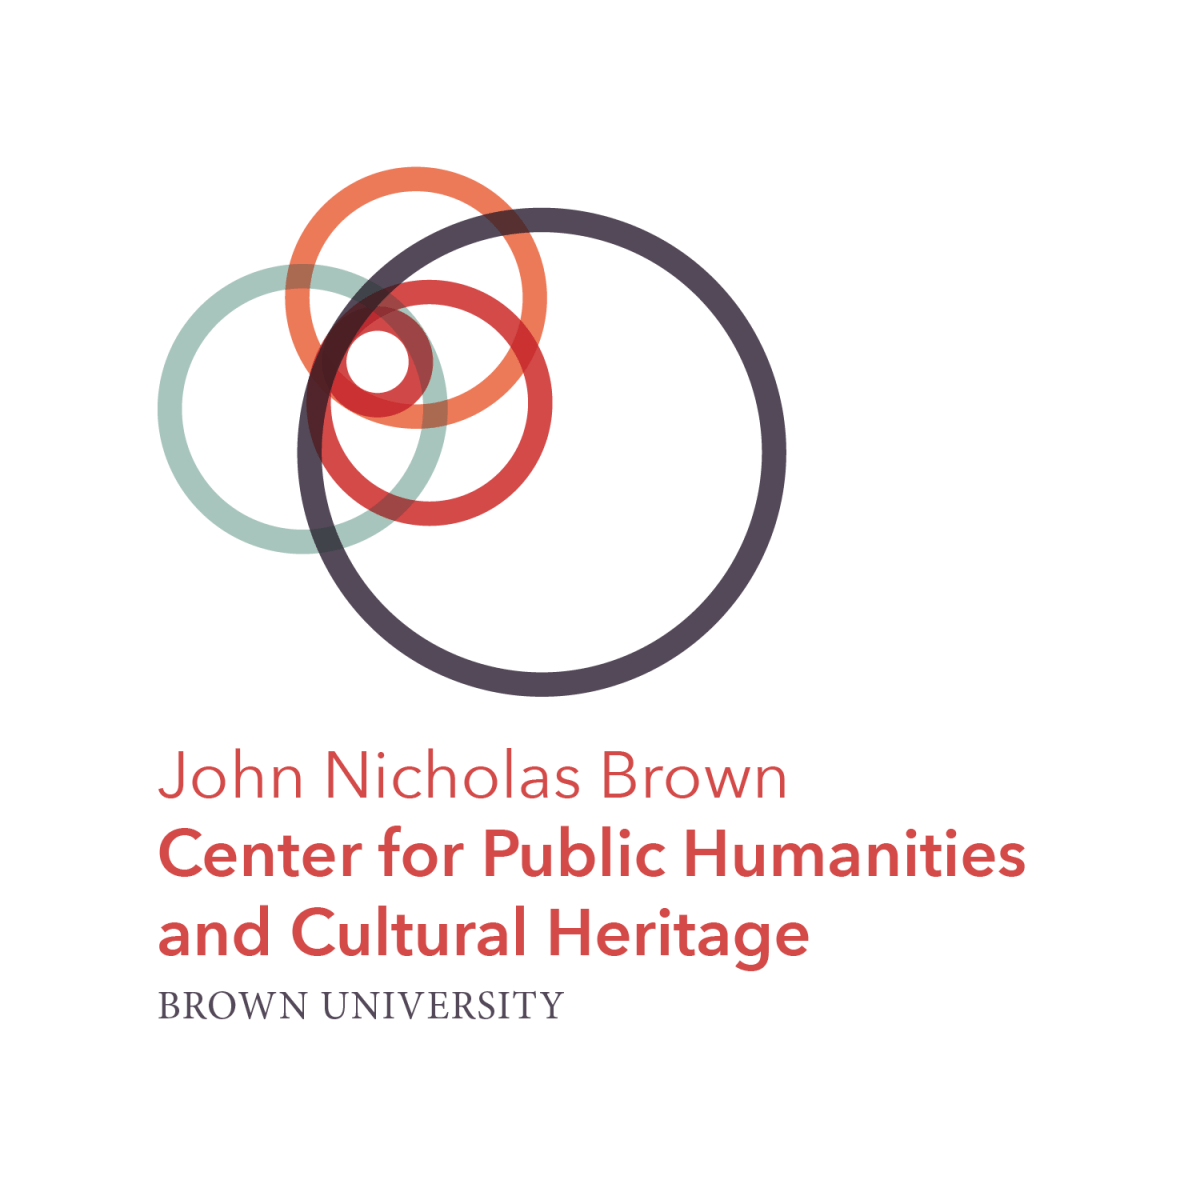 John Nicholas Brown Center for Public Humanities and Cultural Heritage